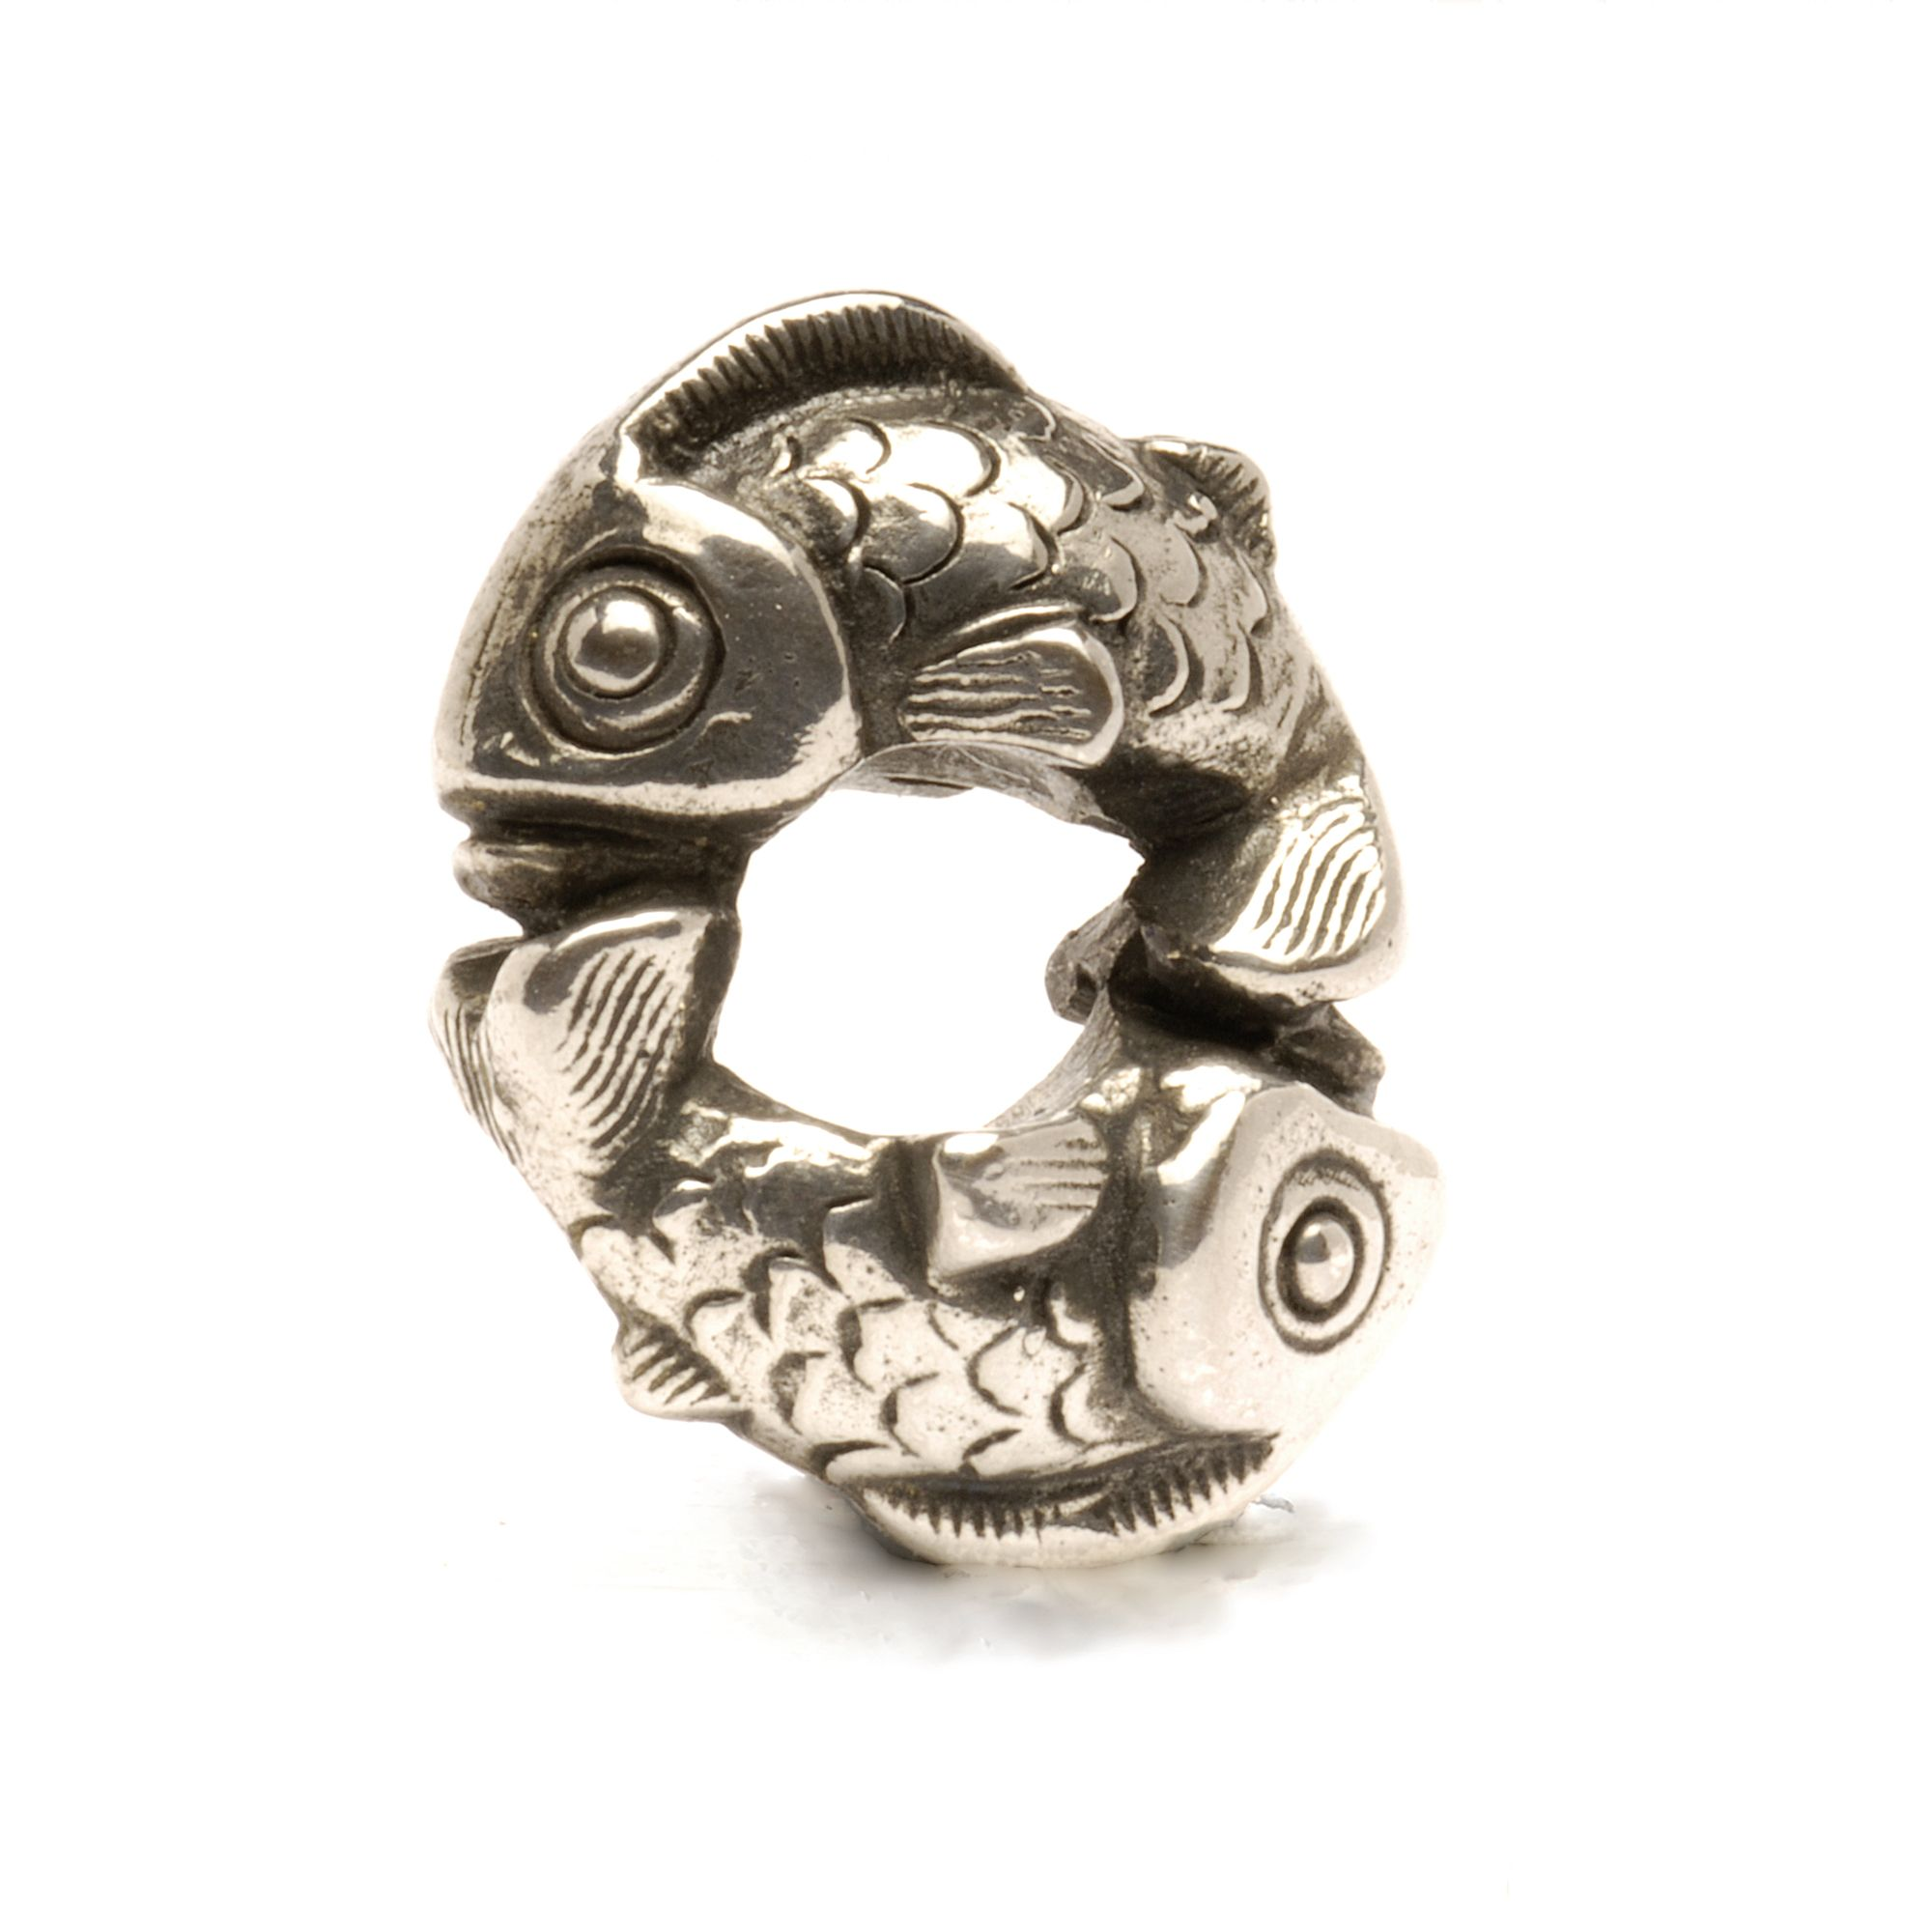 Happy Fish silver charm bead